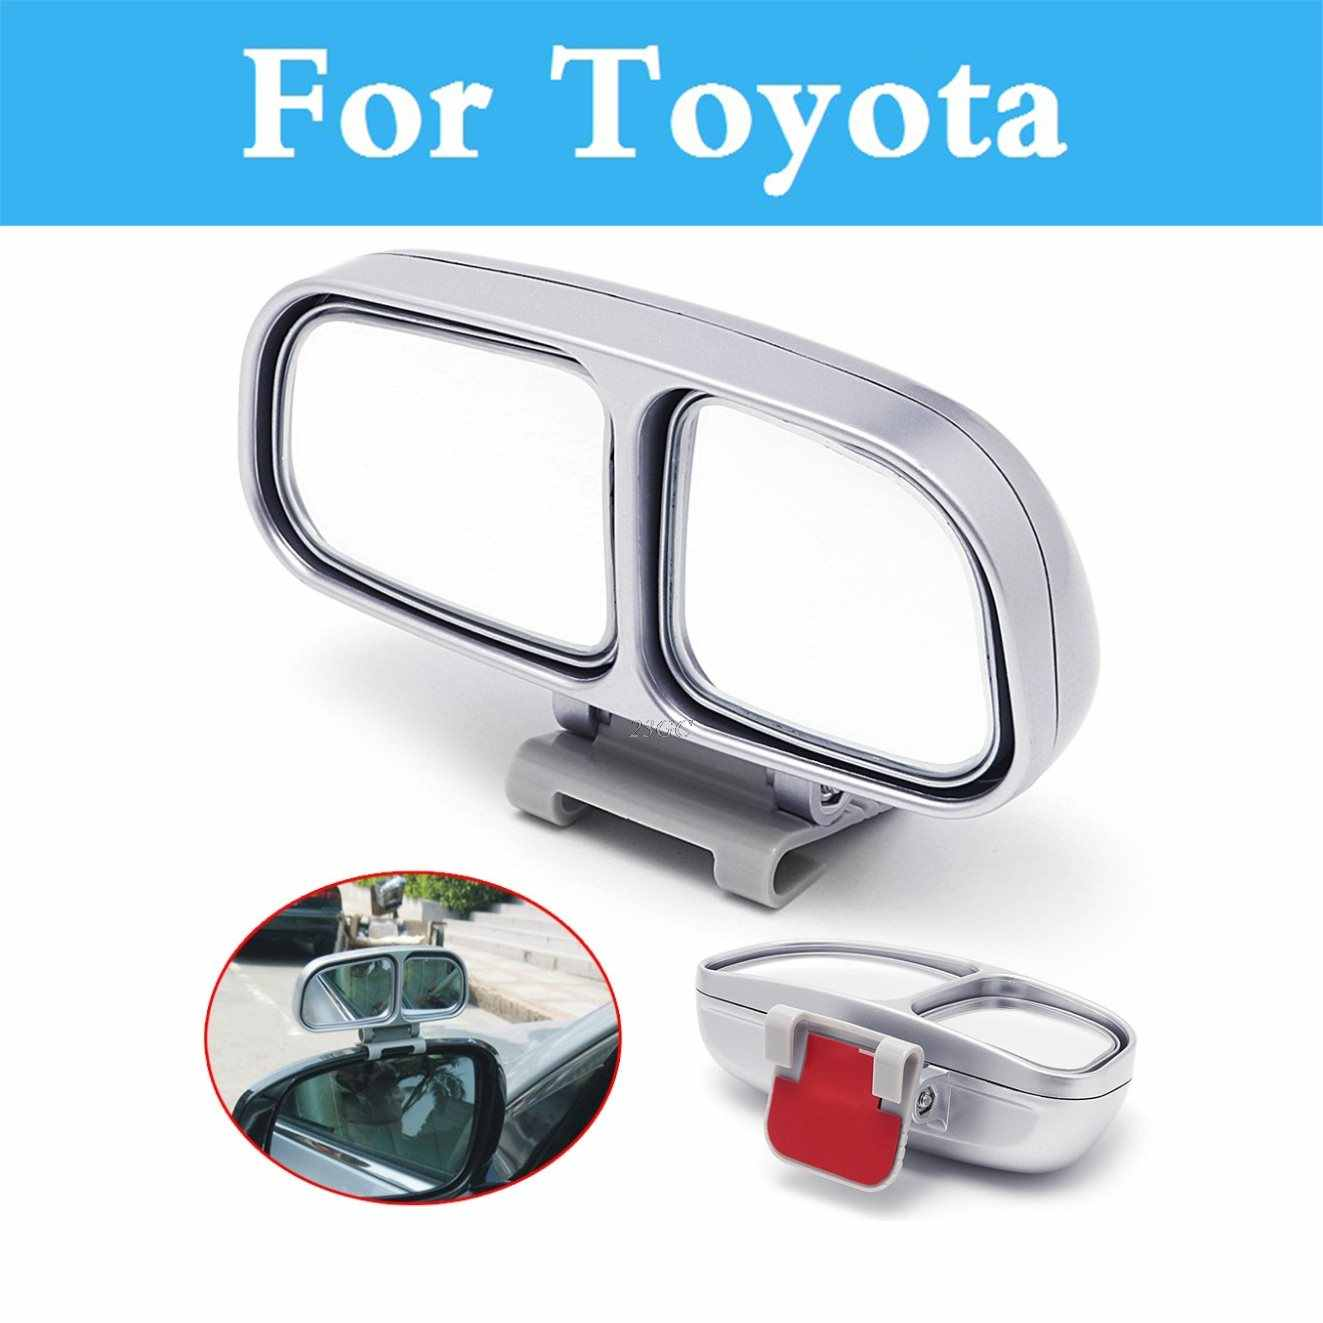 Auto Wide Angle Rear Side Blind Spot Square Mirror For Toyota Cruiser Fortuner GT86 Corolla Runx FJ Harrier Corolla Rumion